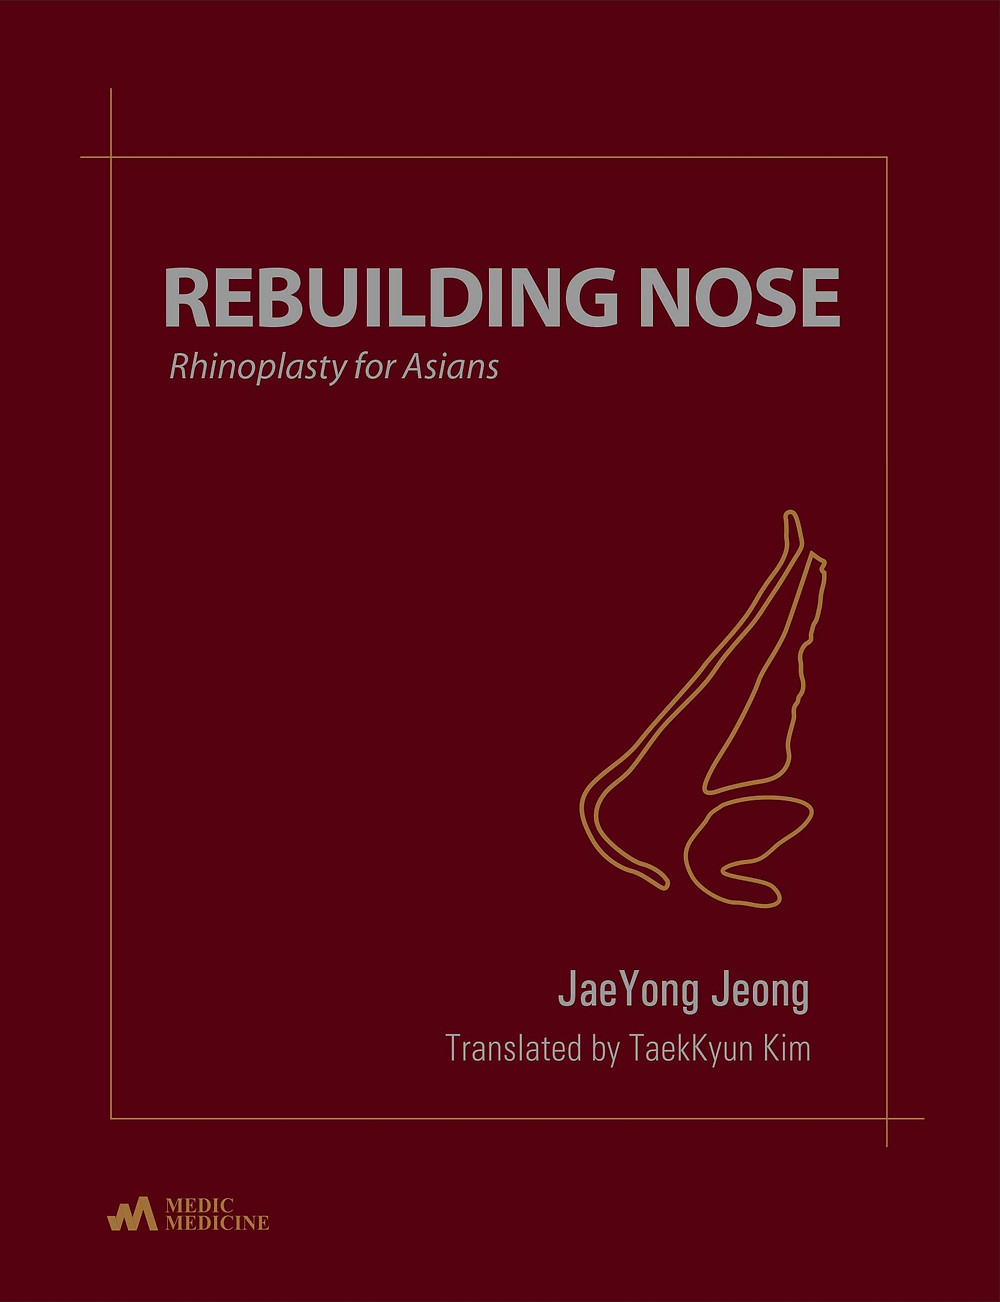 Rebuilding Nose: Rhinoplasty for Asian by Dr. JaeYong Jeong